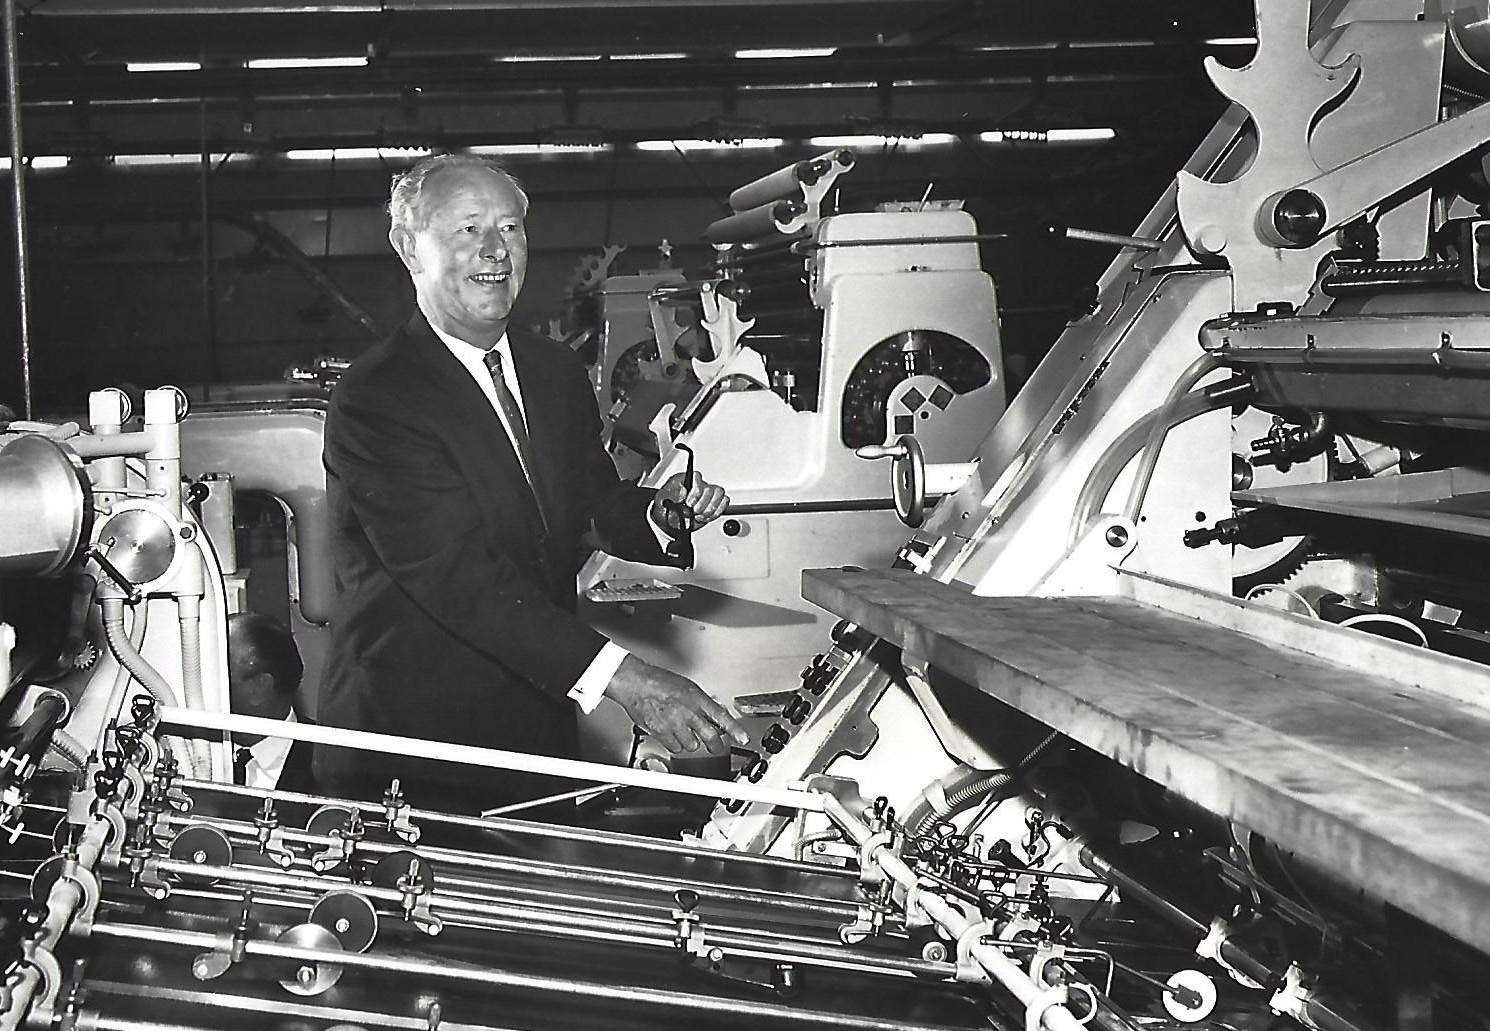 Richard Hearne starts a new Roland press at Passmore's printing factory in Tovil in 1967